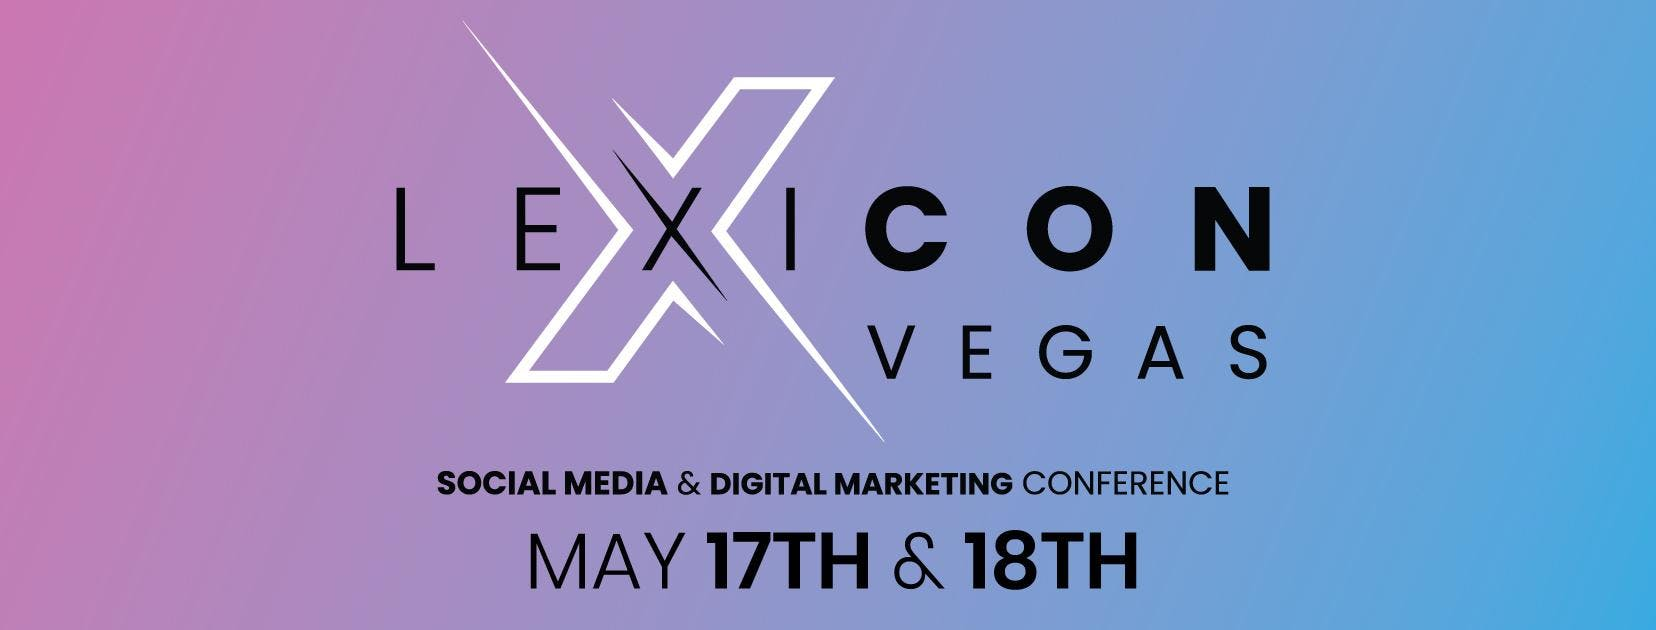 LEXICON VEGAS - Social Media & Digital Market